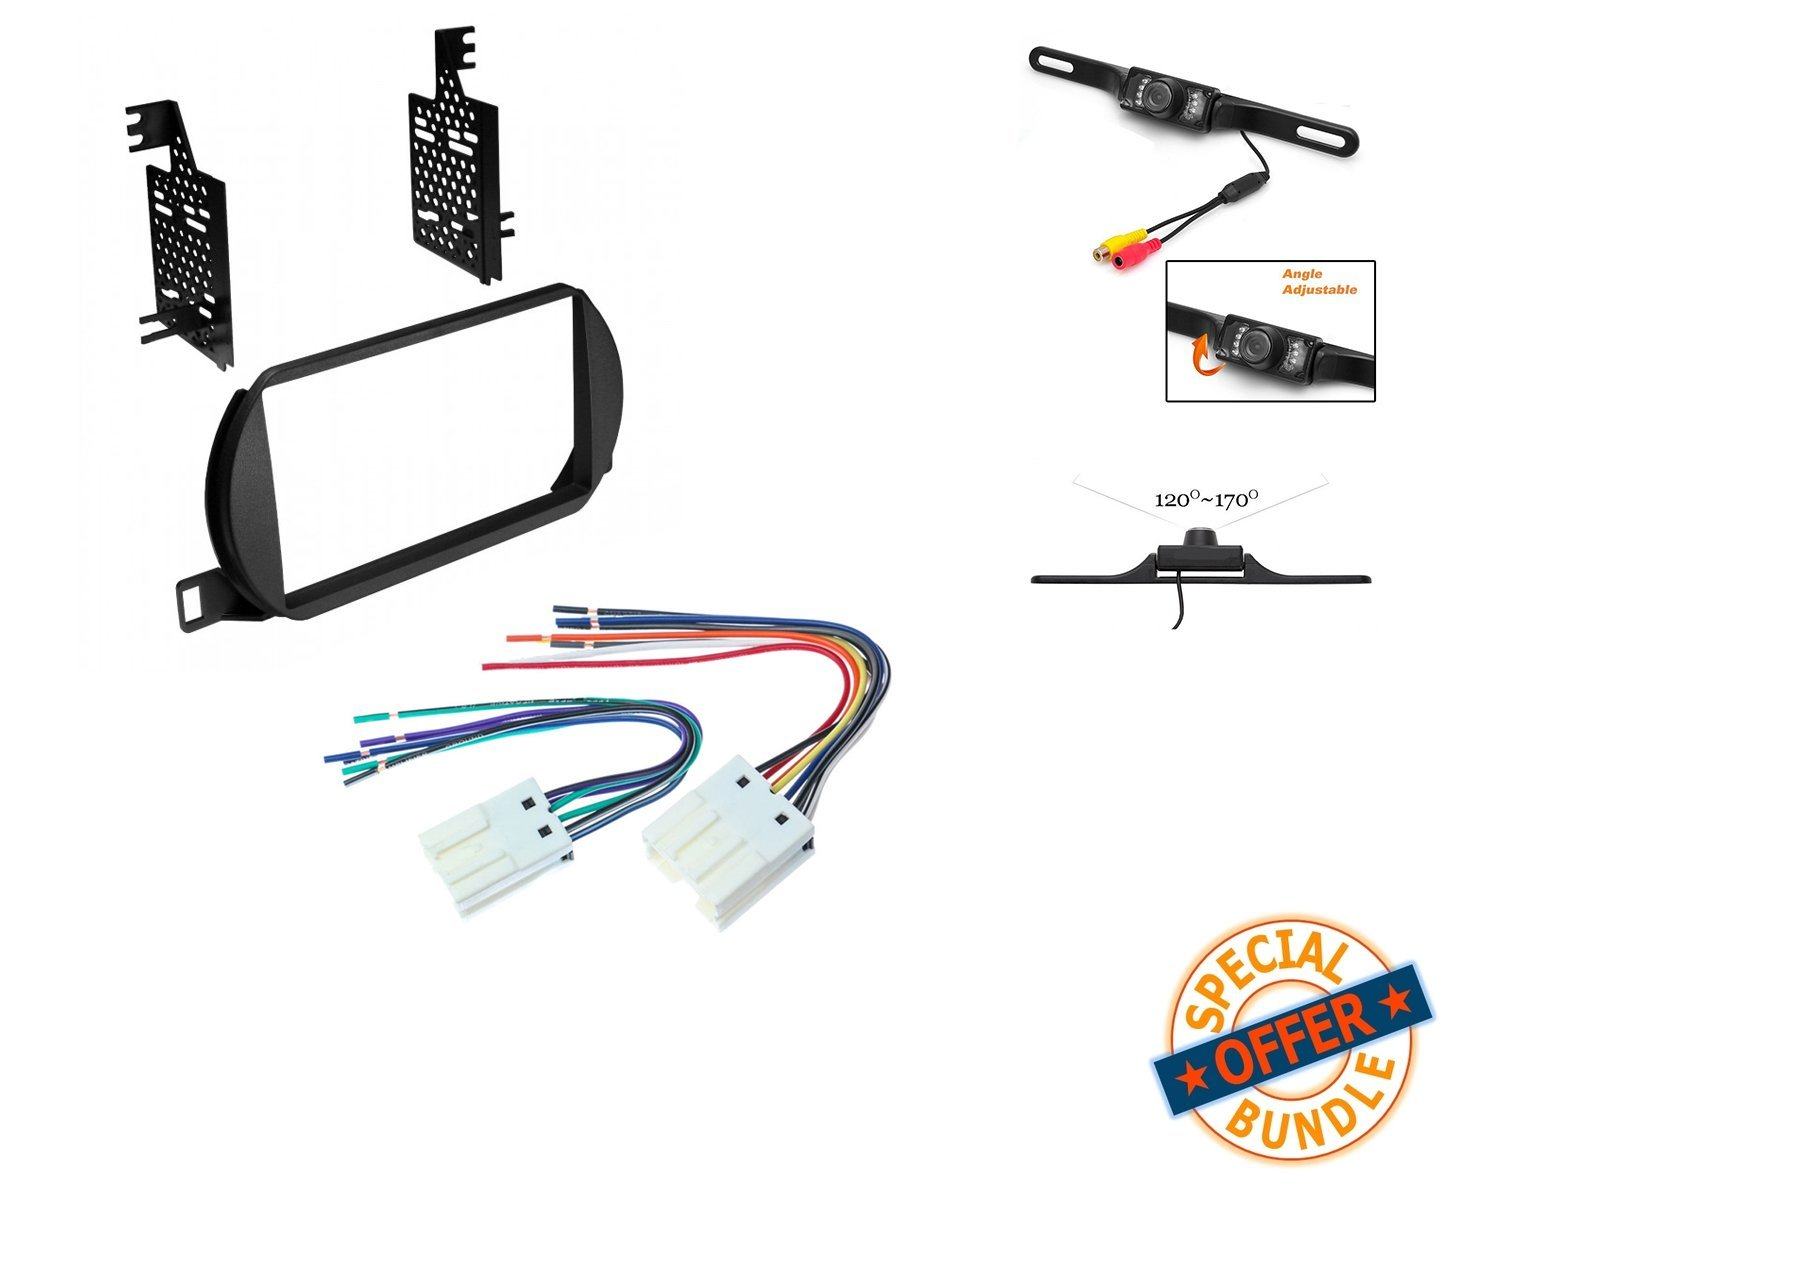 hight resolution of cheap harness for nissan dvd find harness for nissan dvd deals on r nwh704 nissan altima 2014 wiring harness with oem plugs